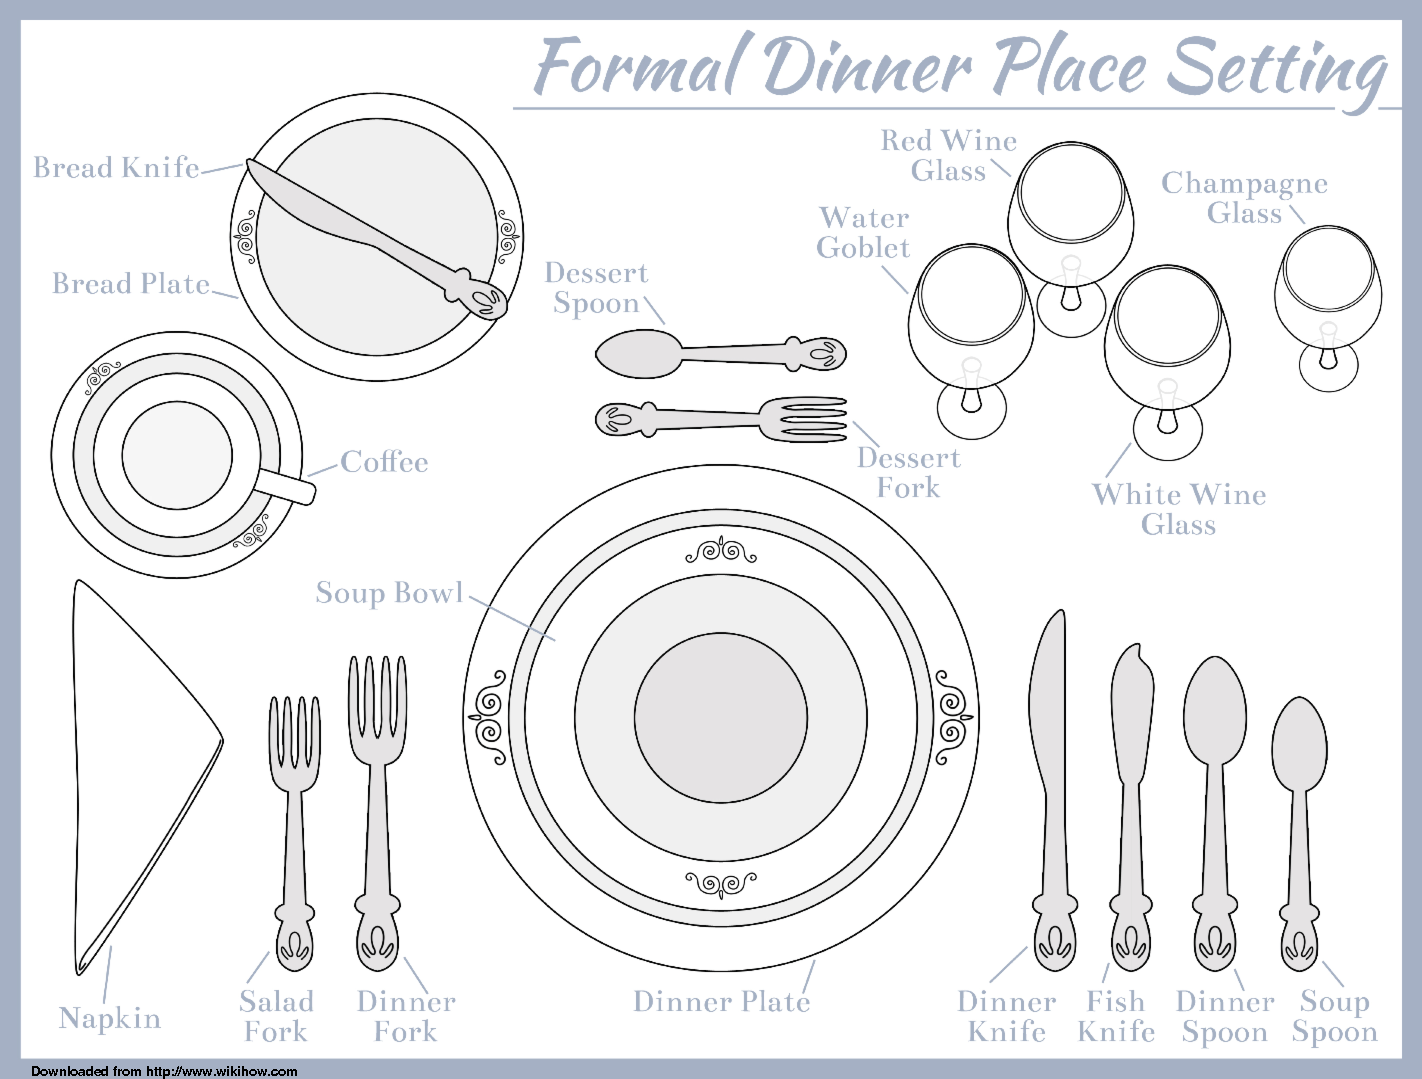 Place Setting Template Wikihow Formal Dinner Table Seven Course Meal Dinner Places